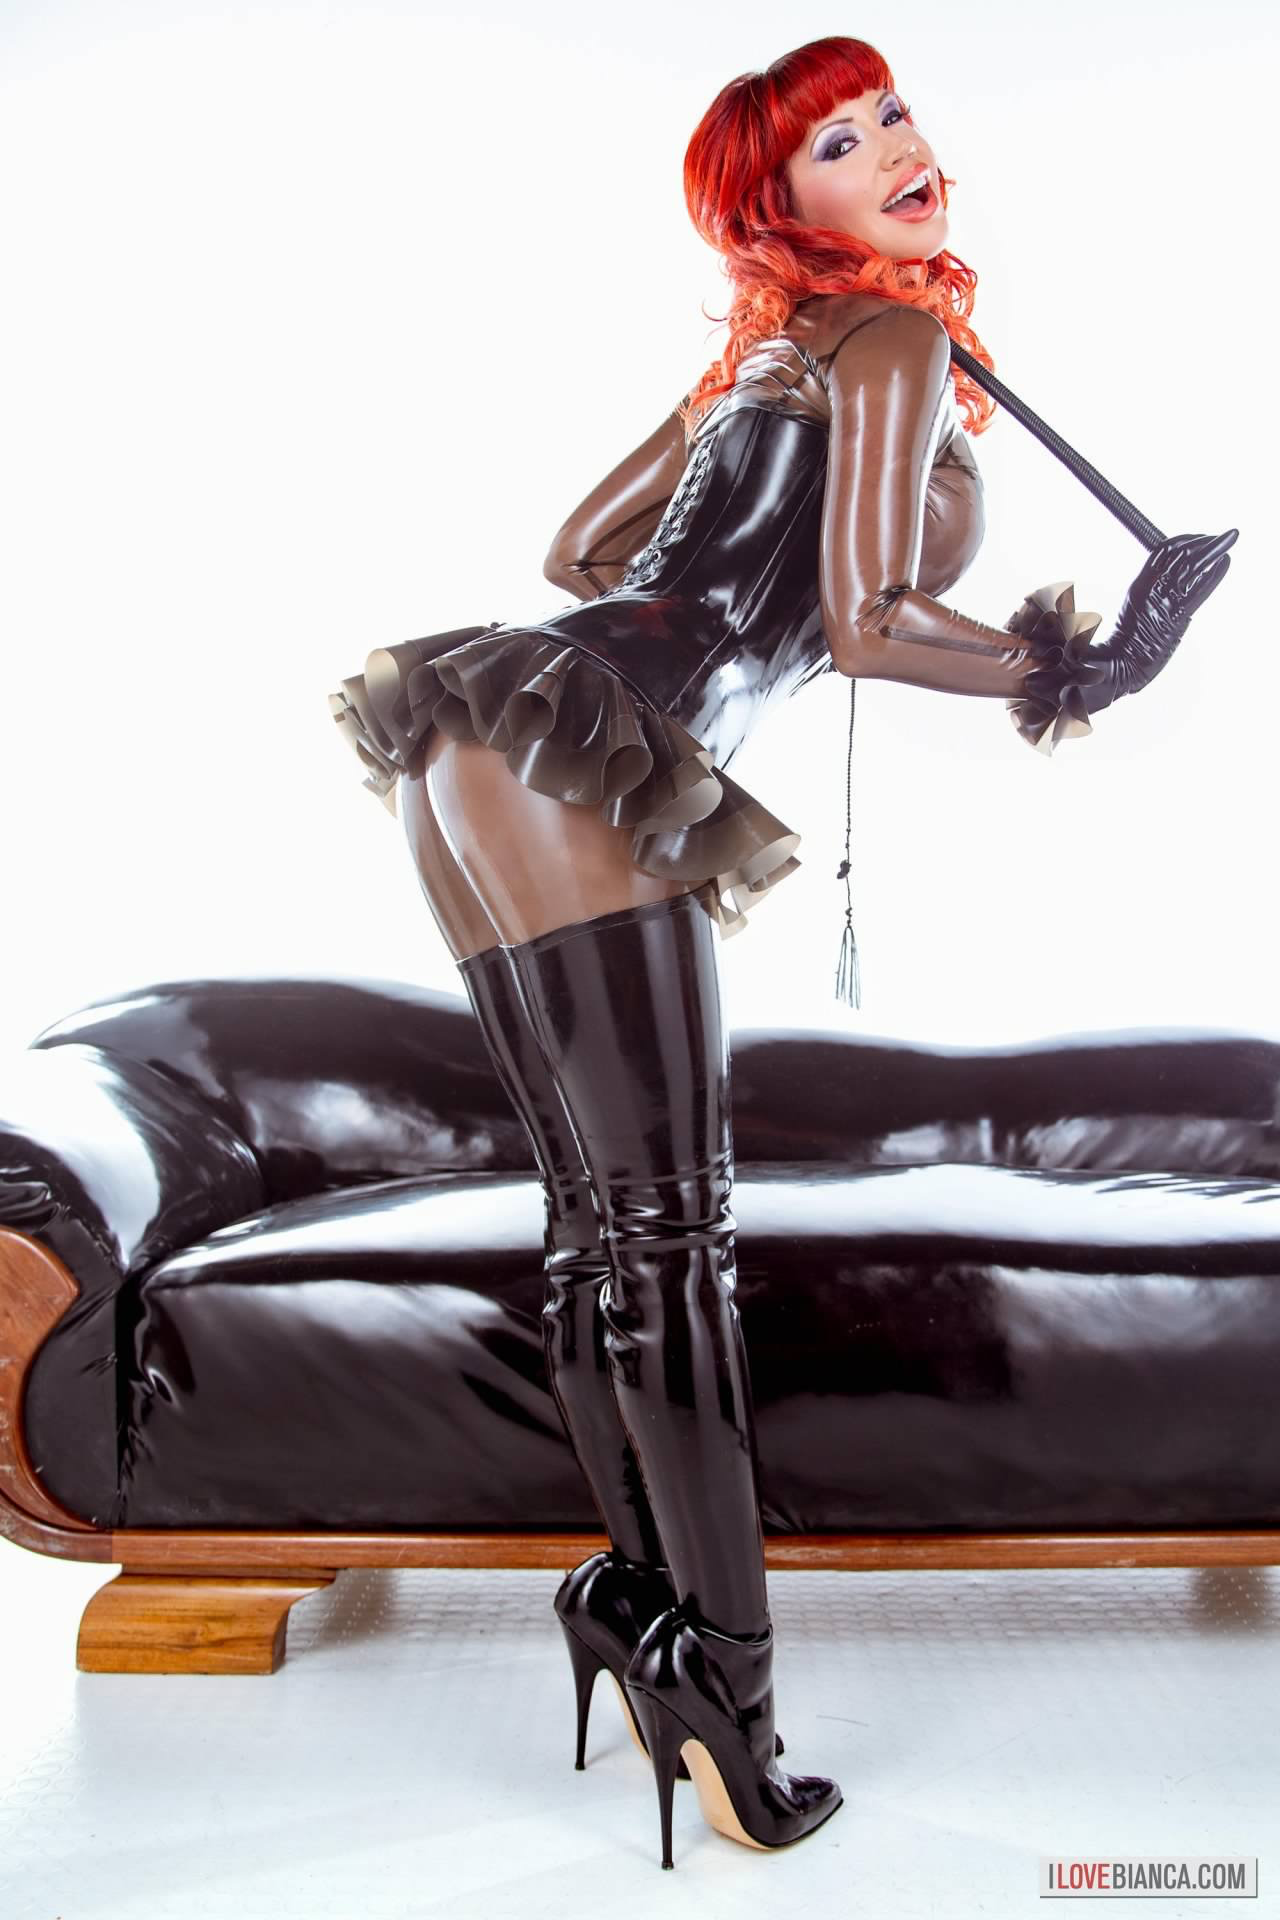 Bianca beauchamp nu — photo 4